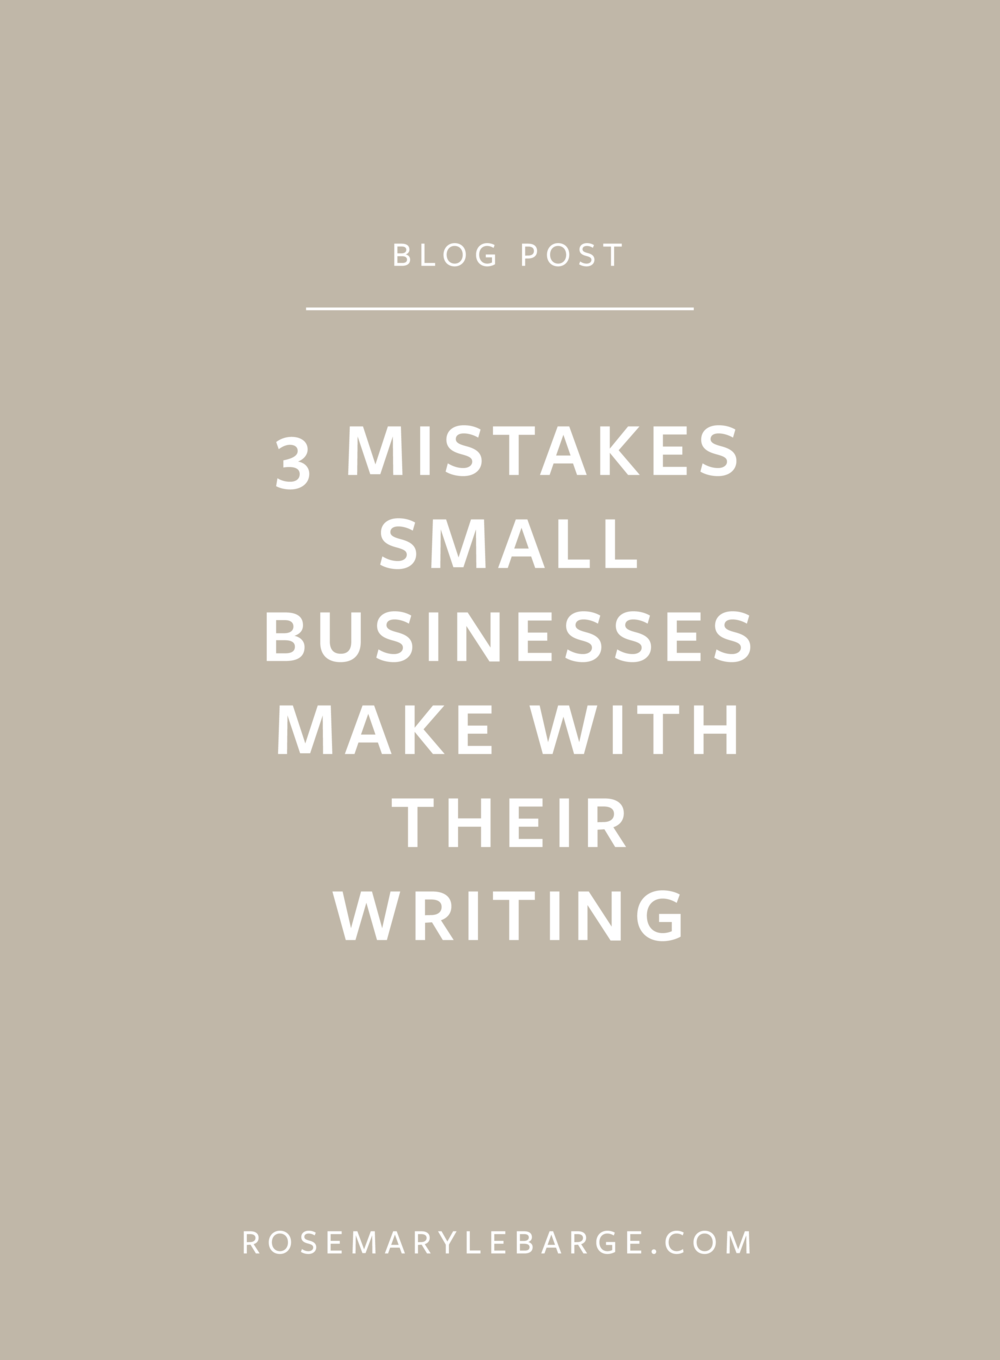 3 Mistakes Small Businesses Make With Their Writing